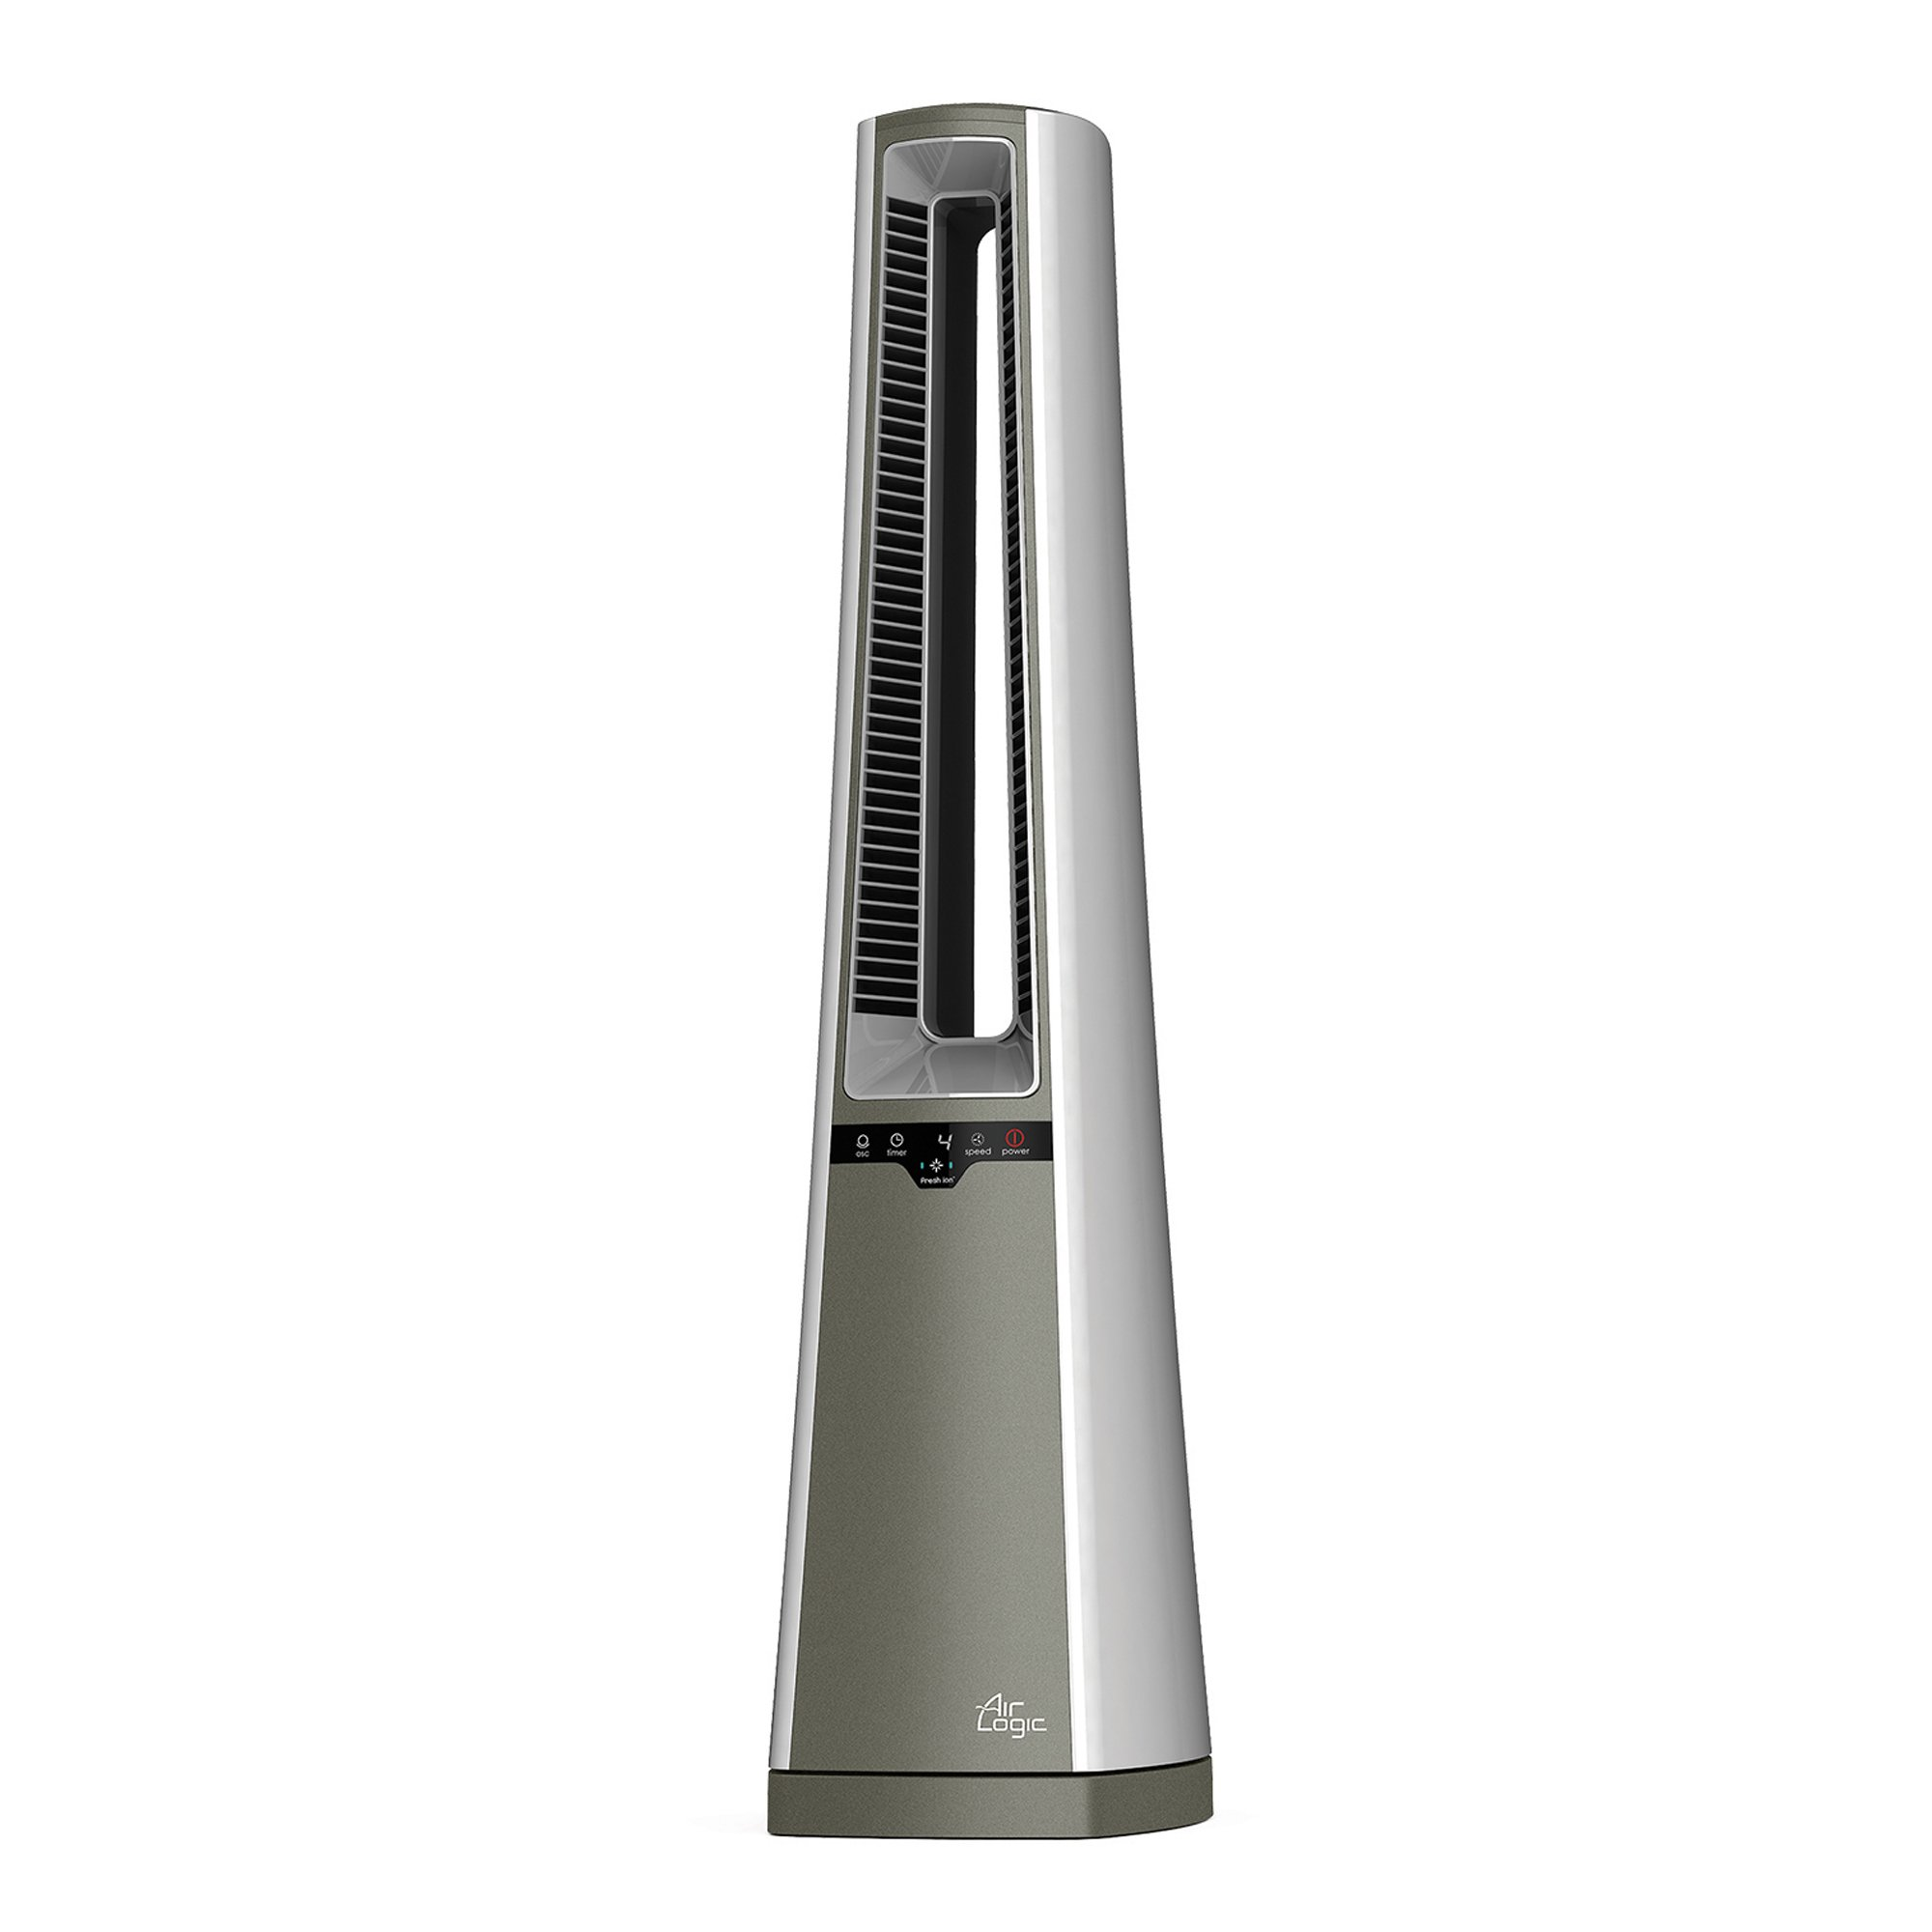 Lasko AC600 Air Logic Bladeless Tower Fan - Provides Quiet Circulation for the Home or Home Office